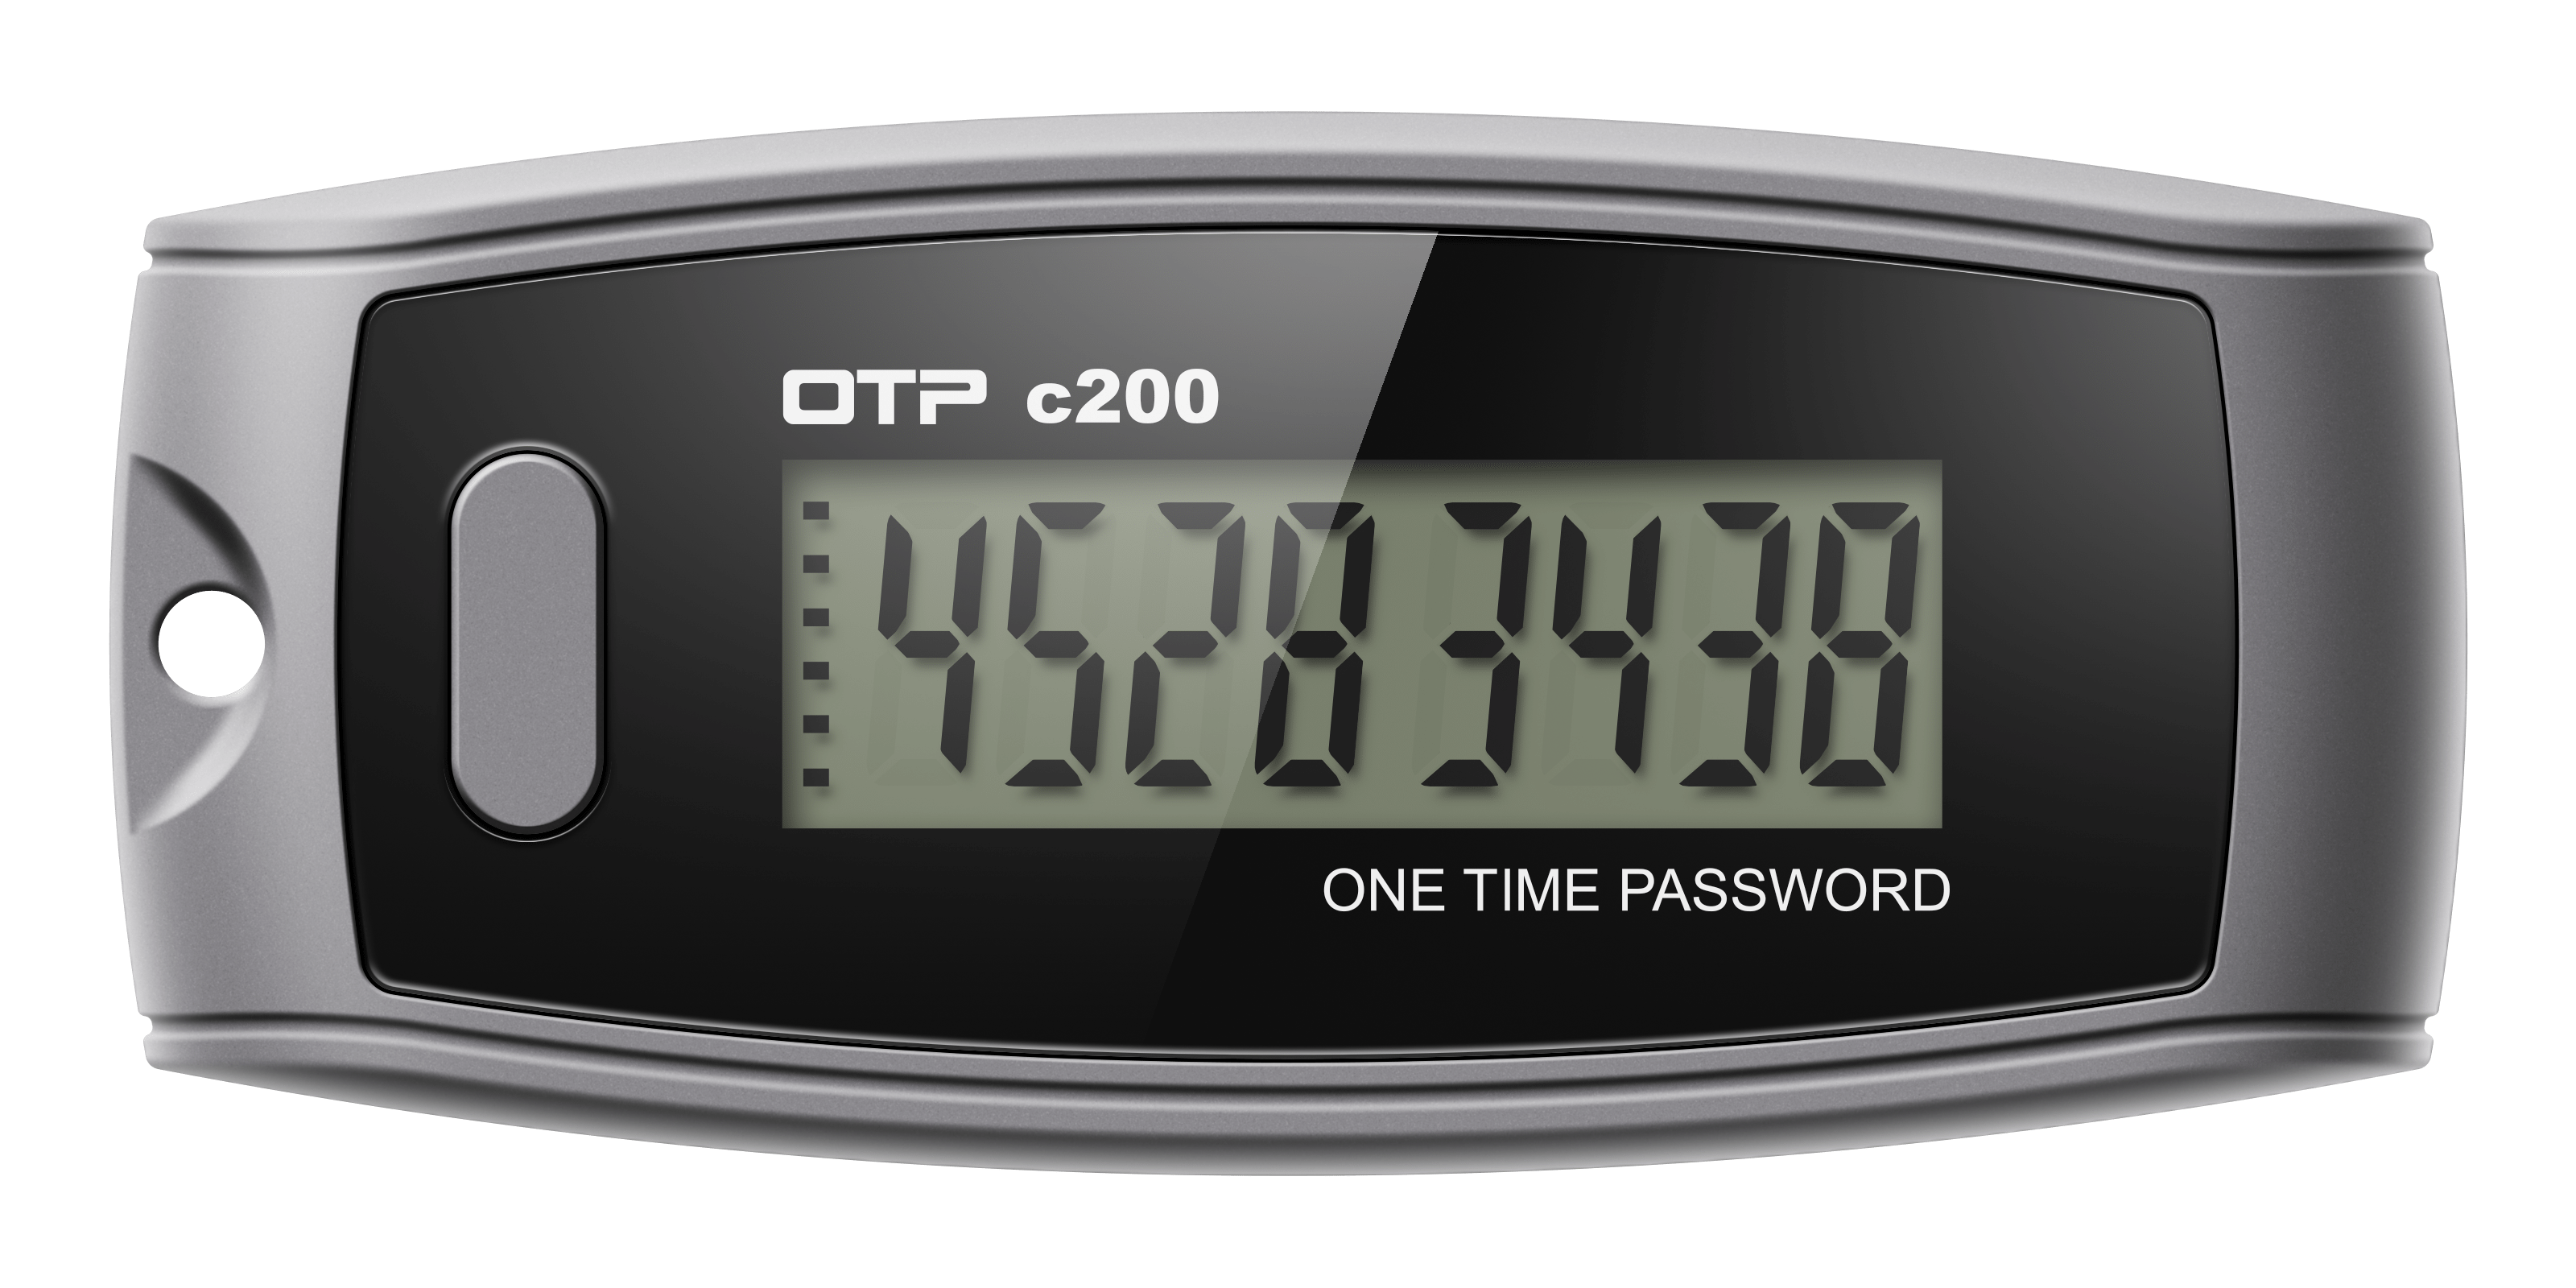 FEITIAN OTP c200 OATH Time-Based 2FA Token (8 Digit) (60 Second Interval) (Casing: H27) - FEITIAN Technologies US